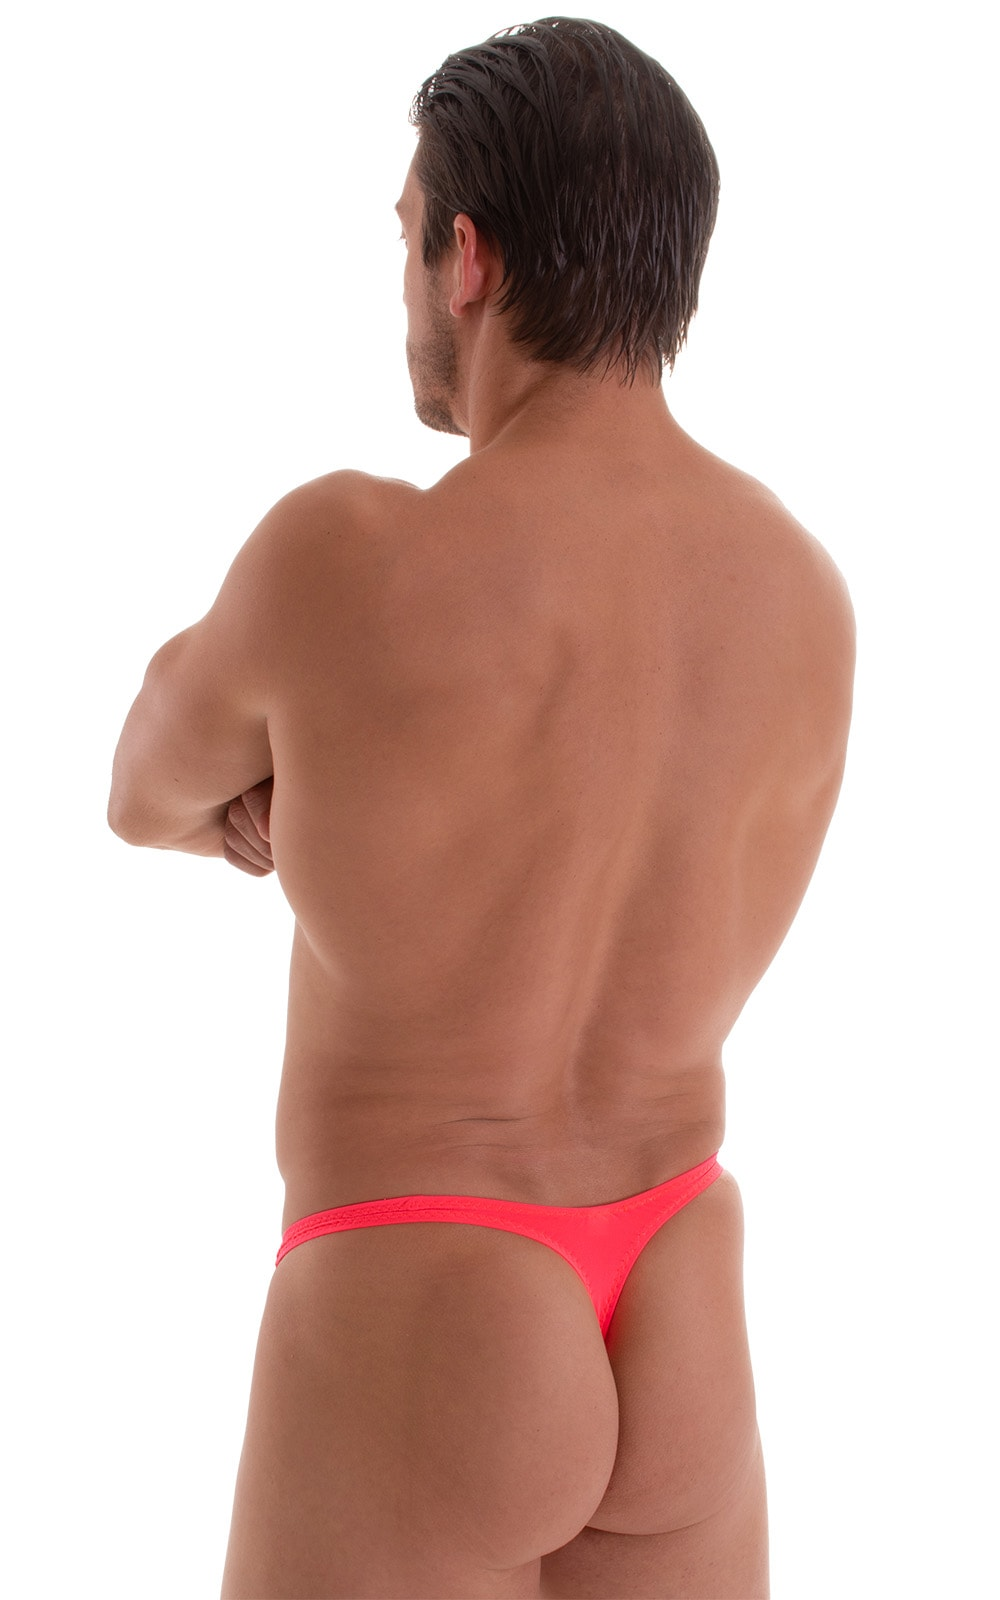 T Back Thong Swimsuit in ThinSkinz Neon Coral 3